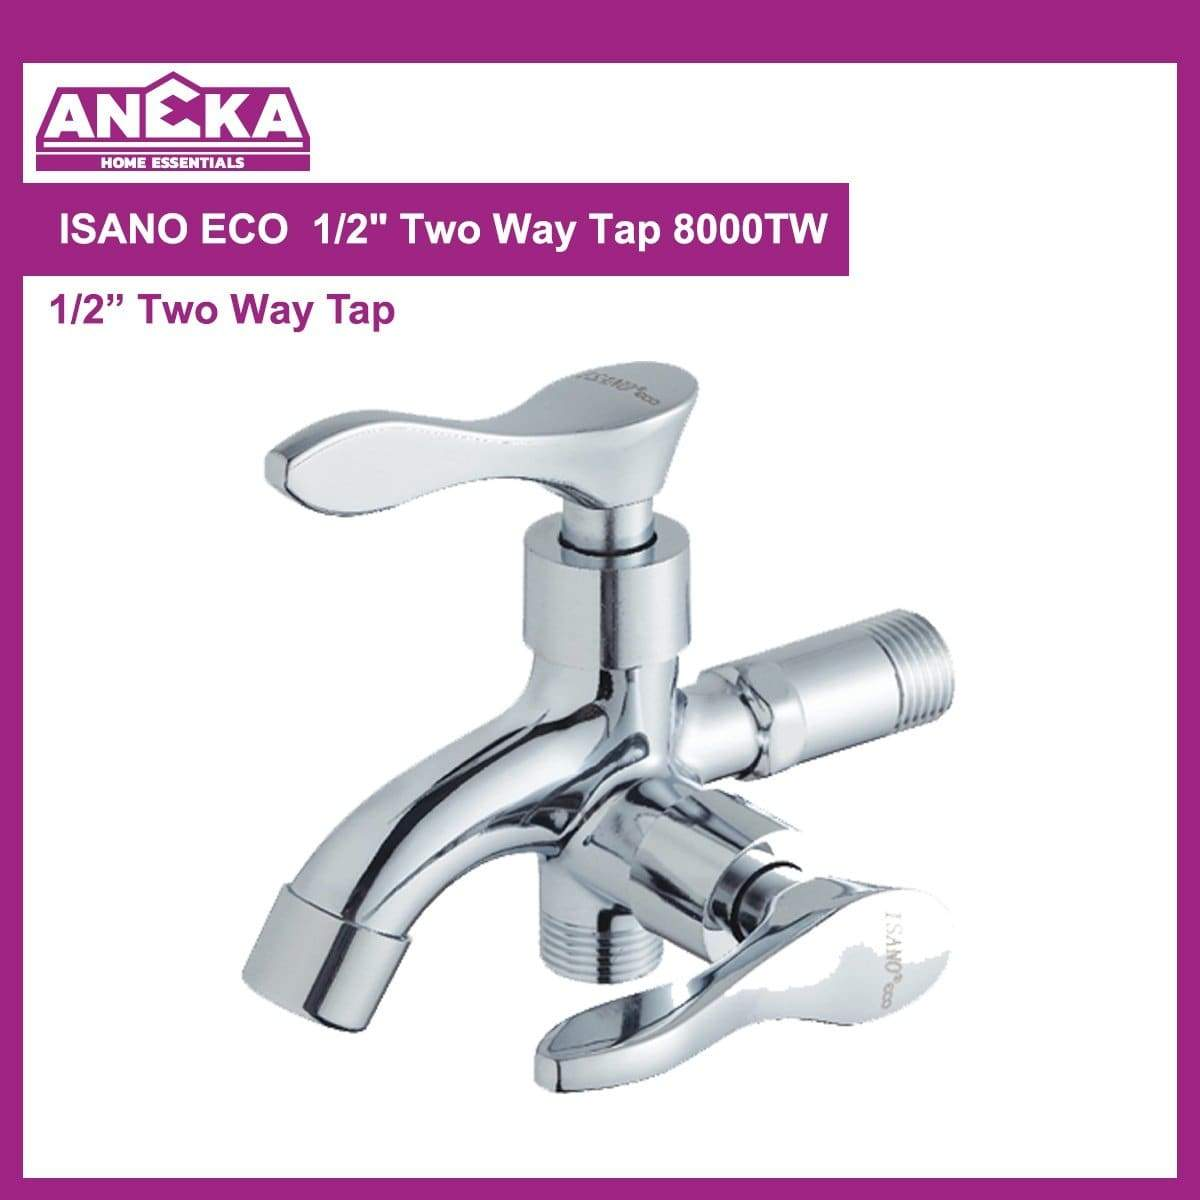 "ISANO ECO 1/2"" Two Way Tap 8000TW"